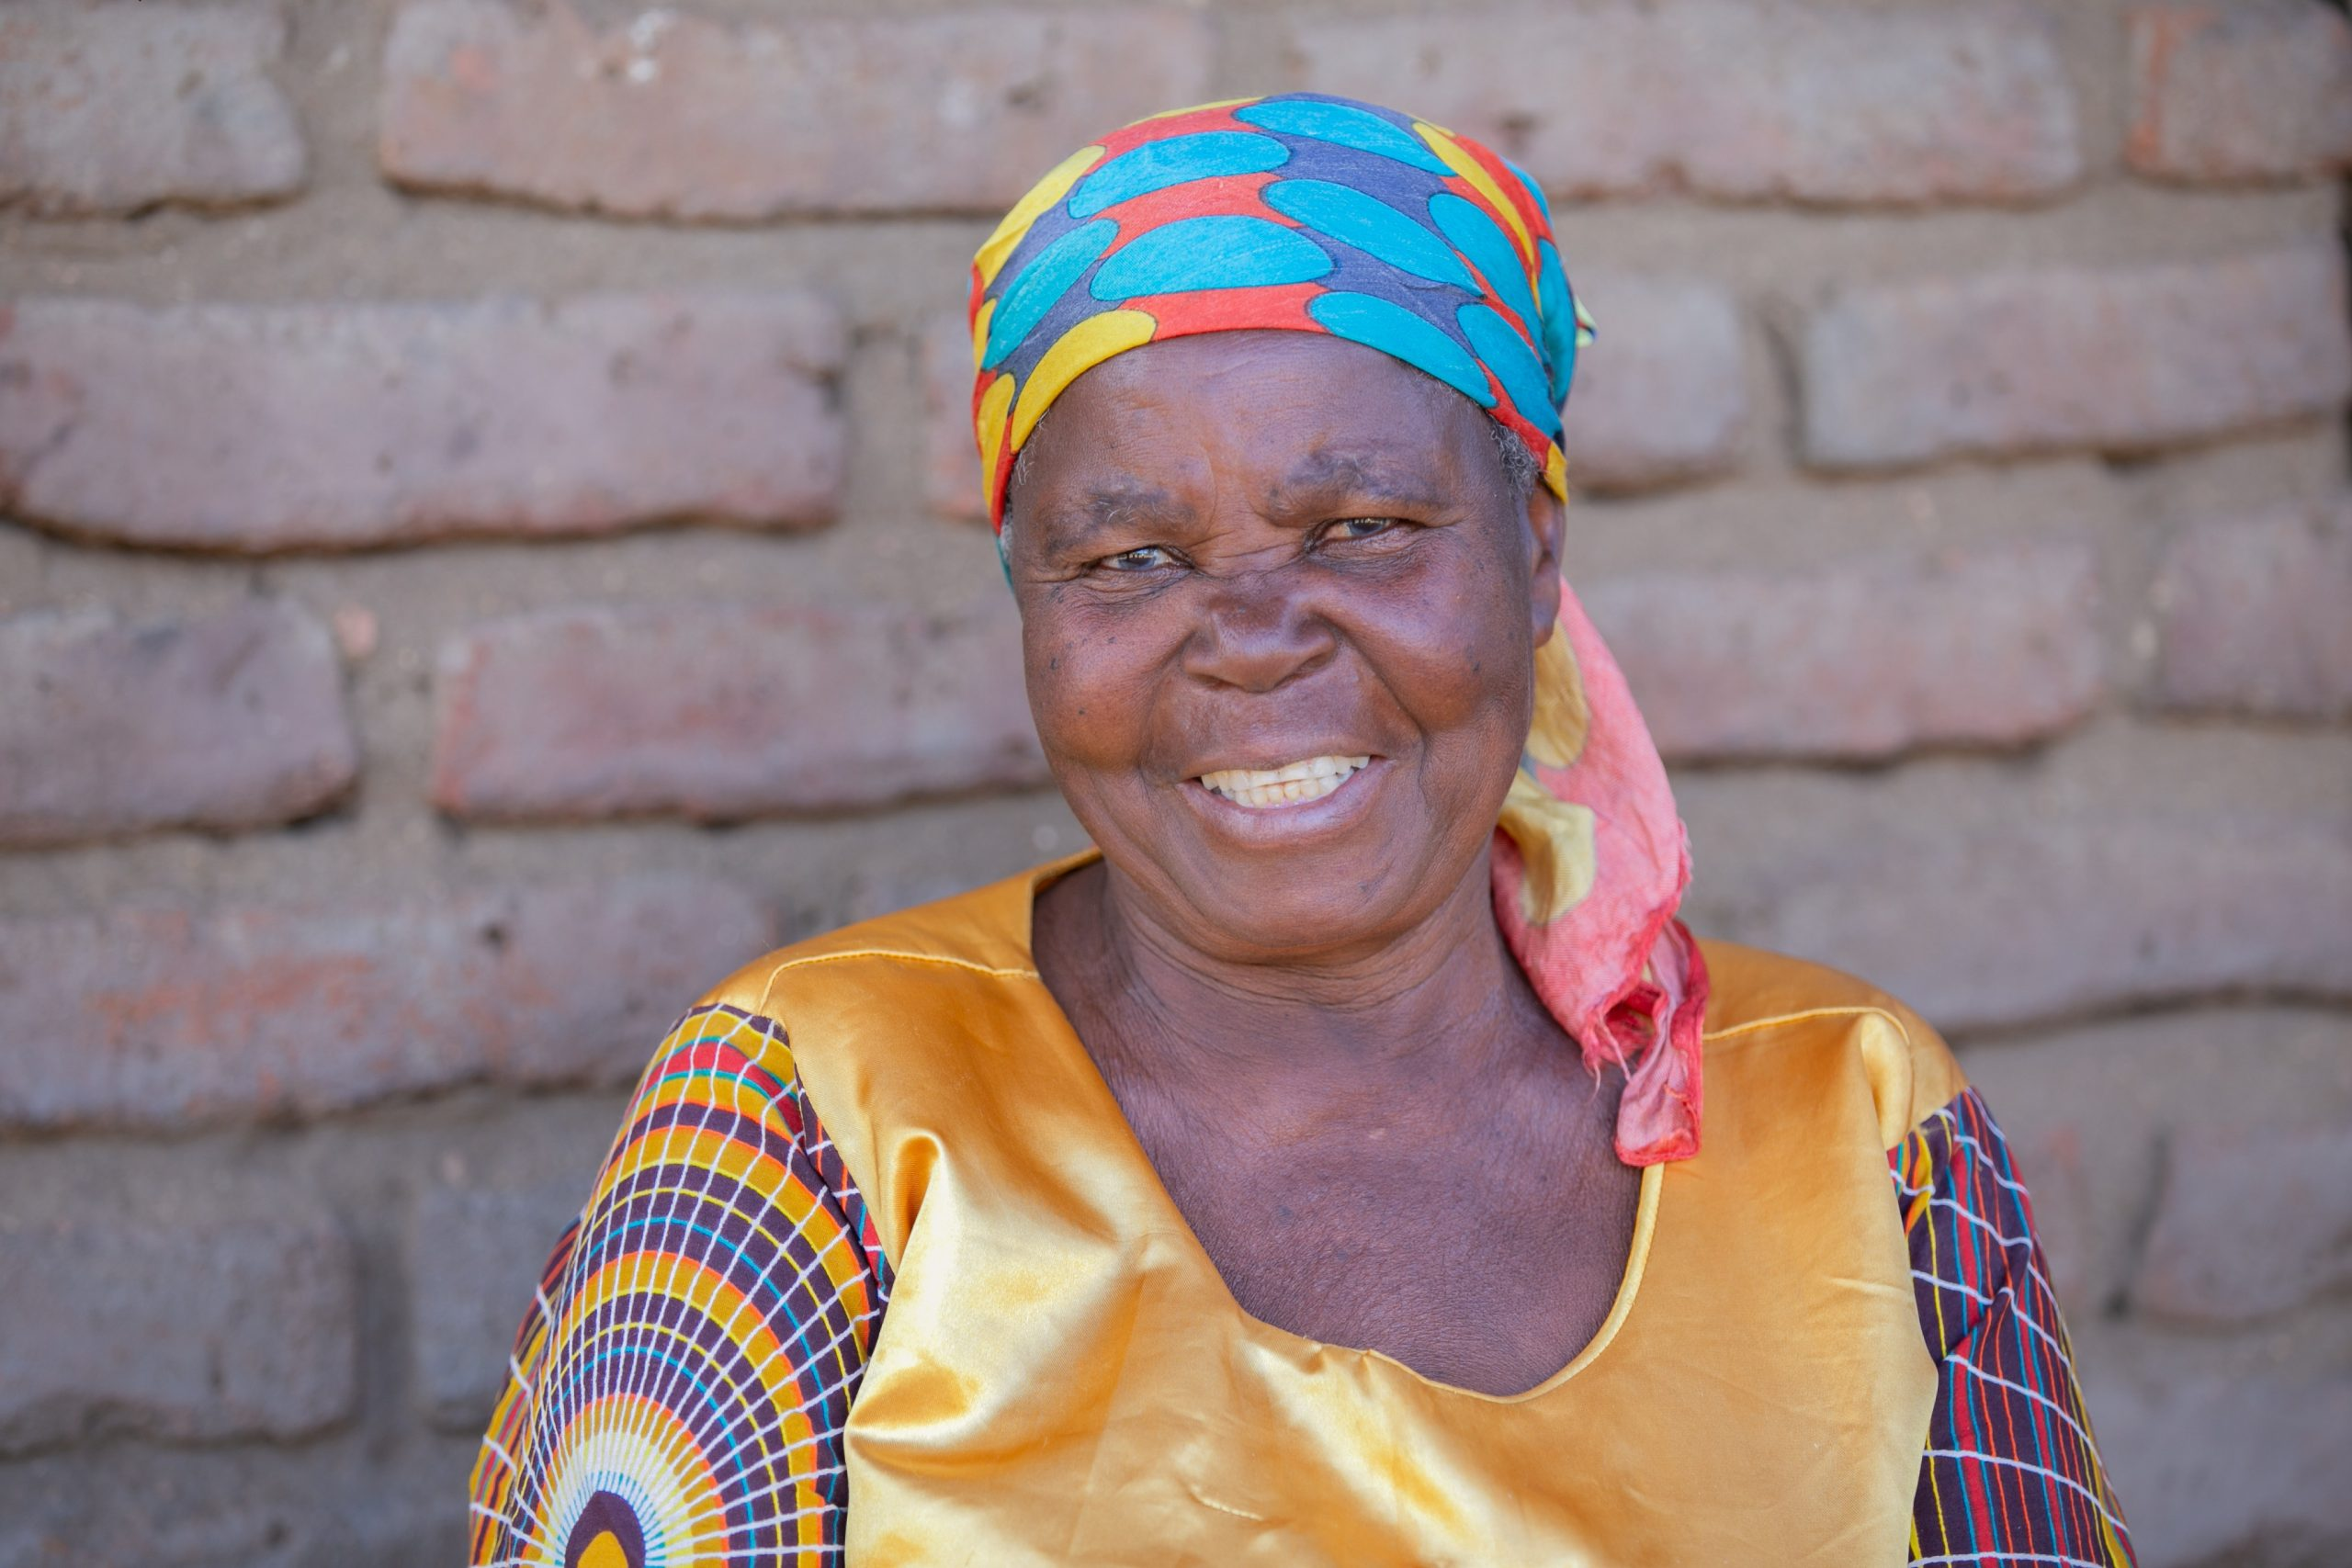 210507 HelpAge, Malawi_Fairpicture_Catherine_Robert_001 -6